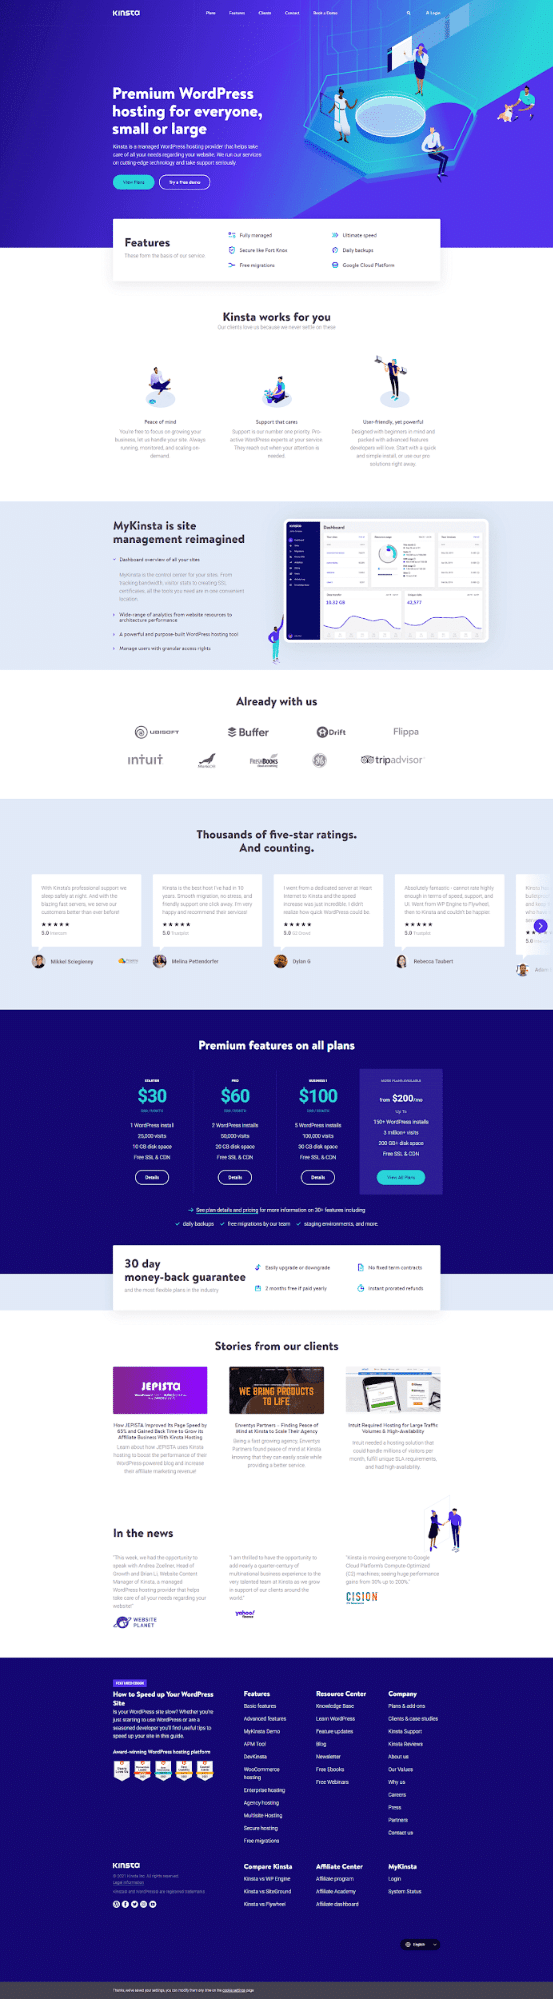 A full-page screenshot of the Kinsta homepage.